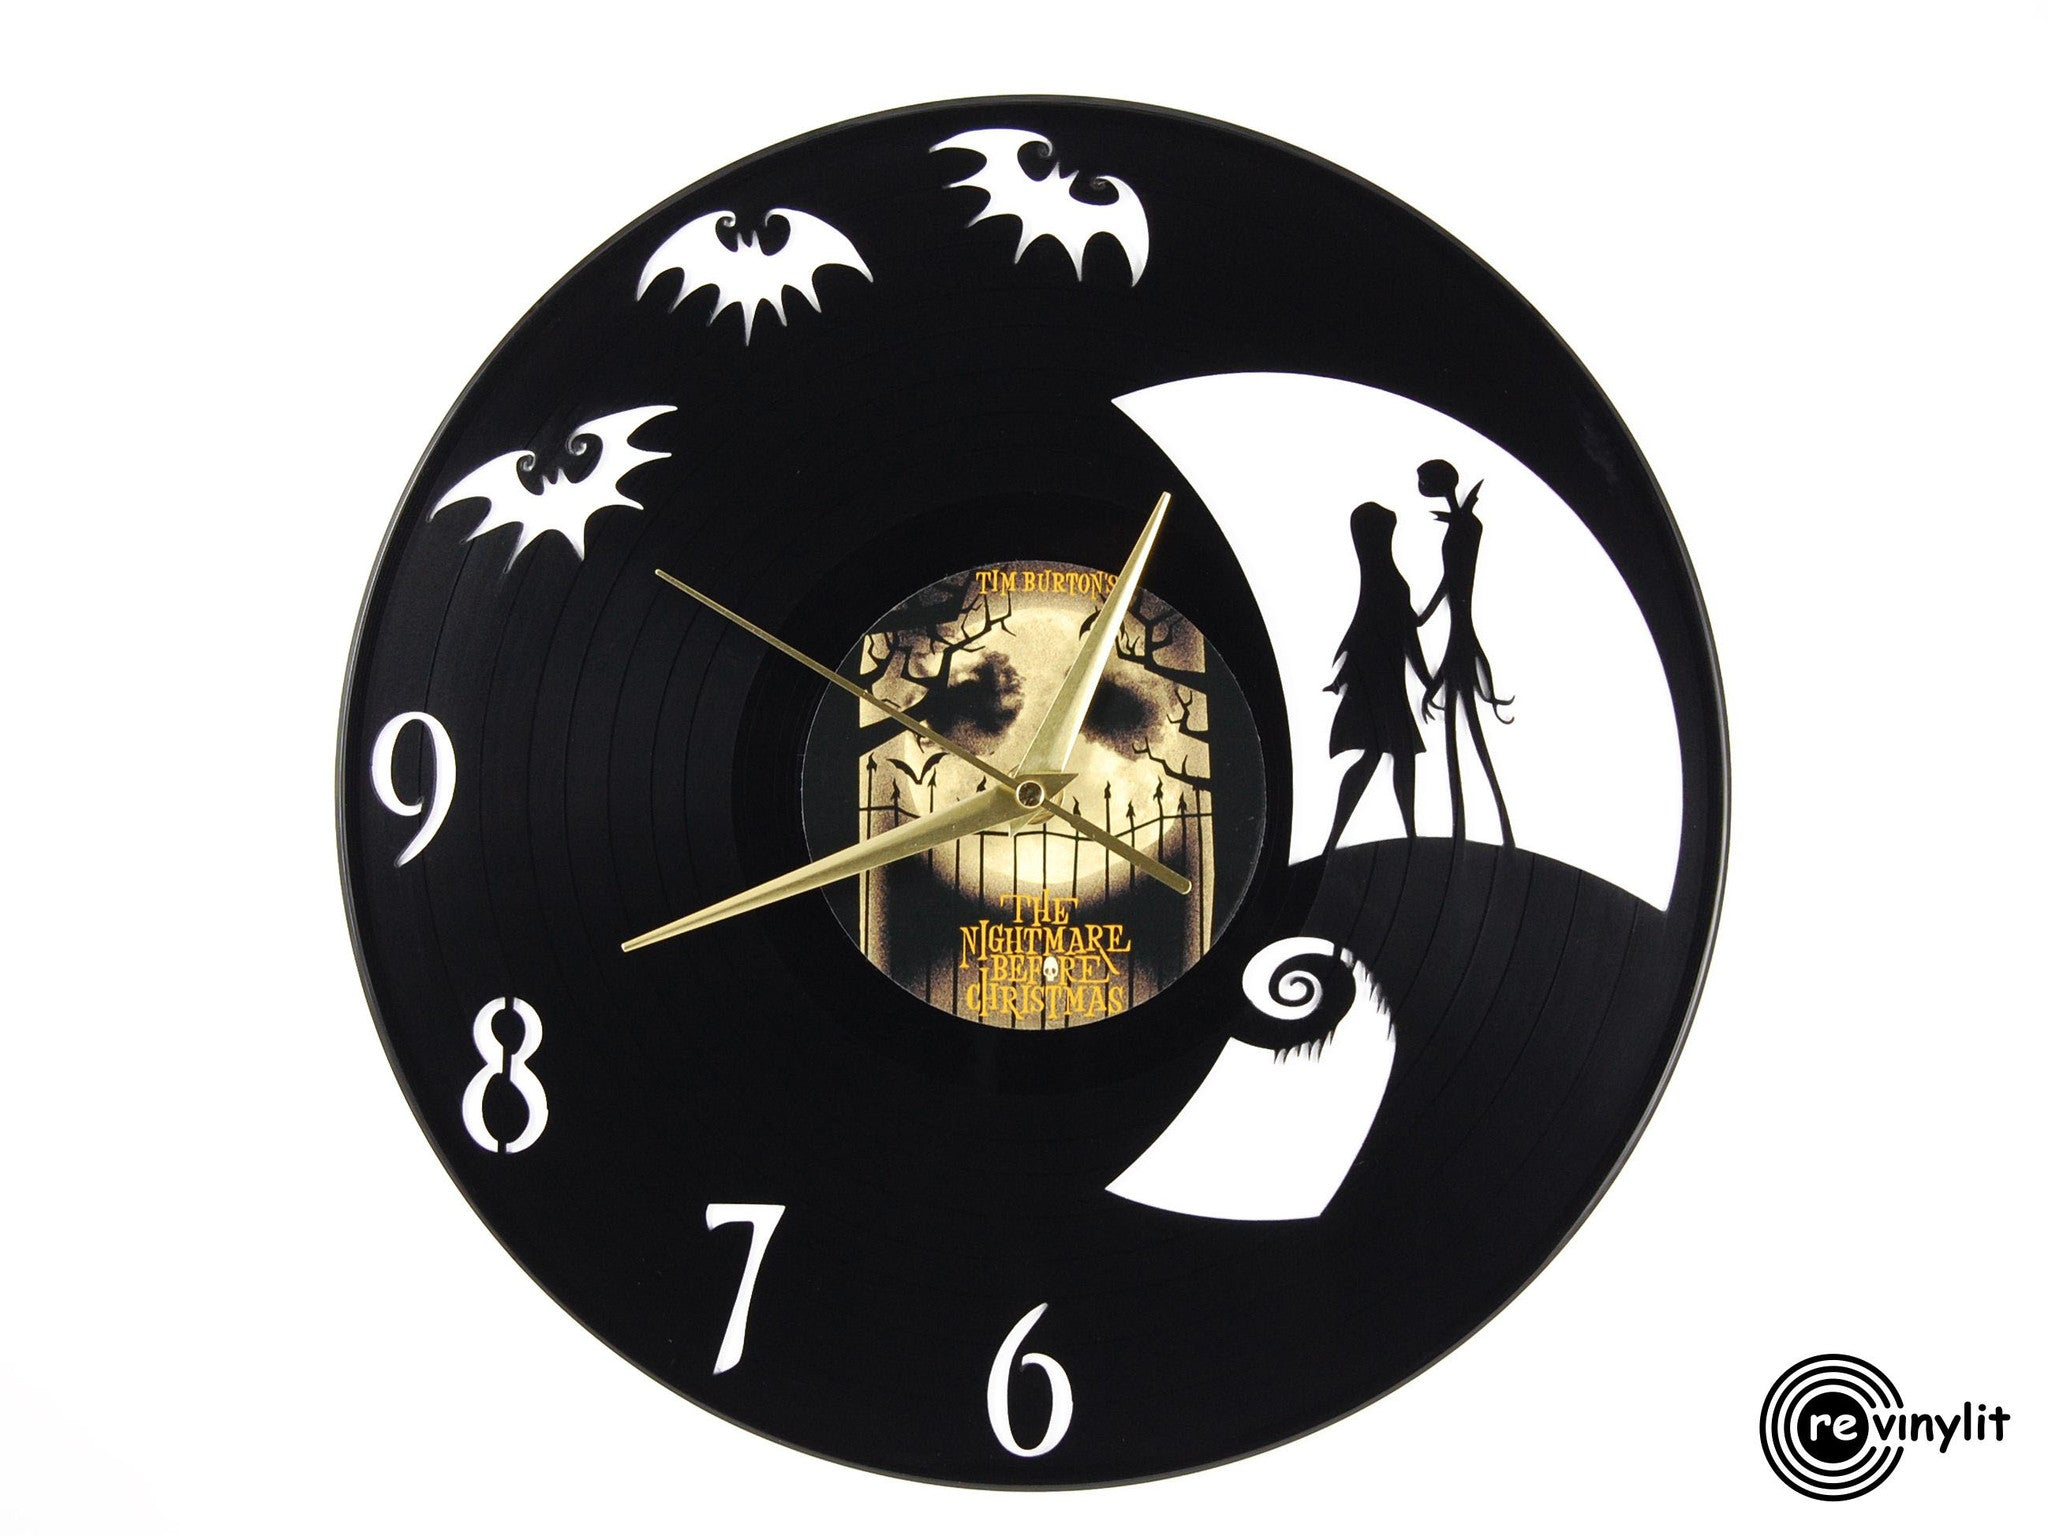 nightmare before christmas vinyl clock vinyl record clock by revinylit